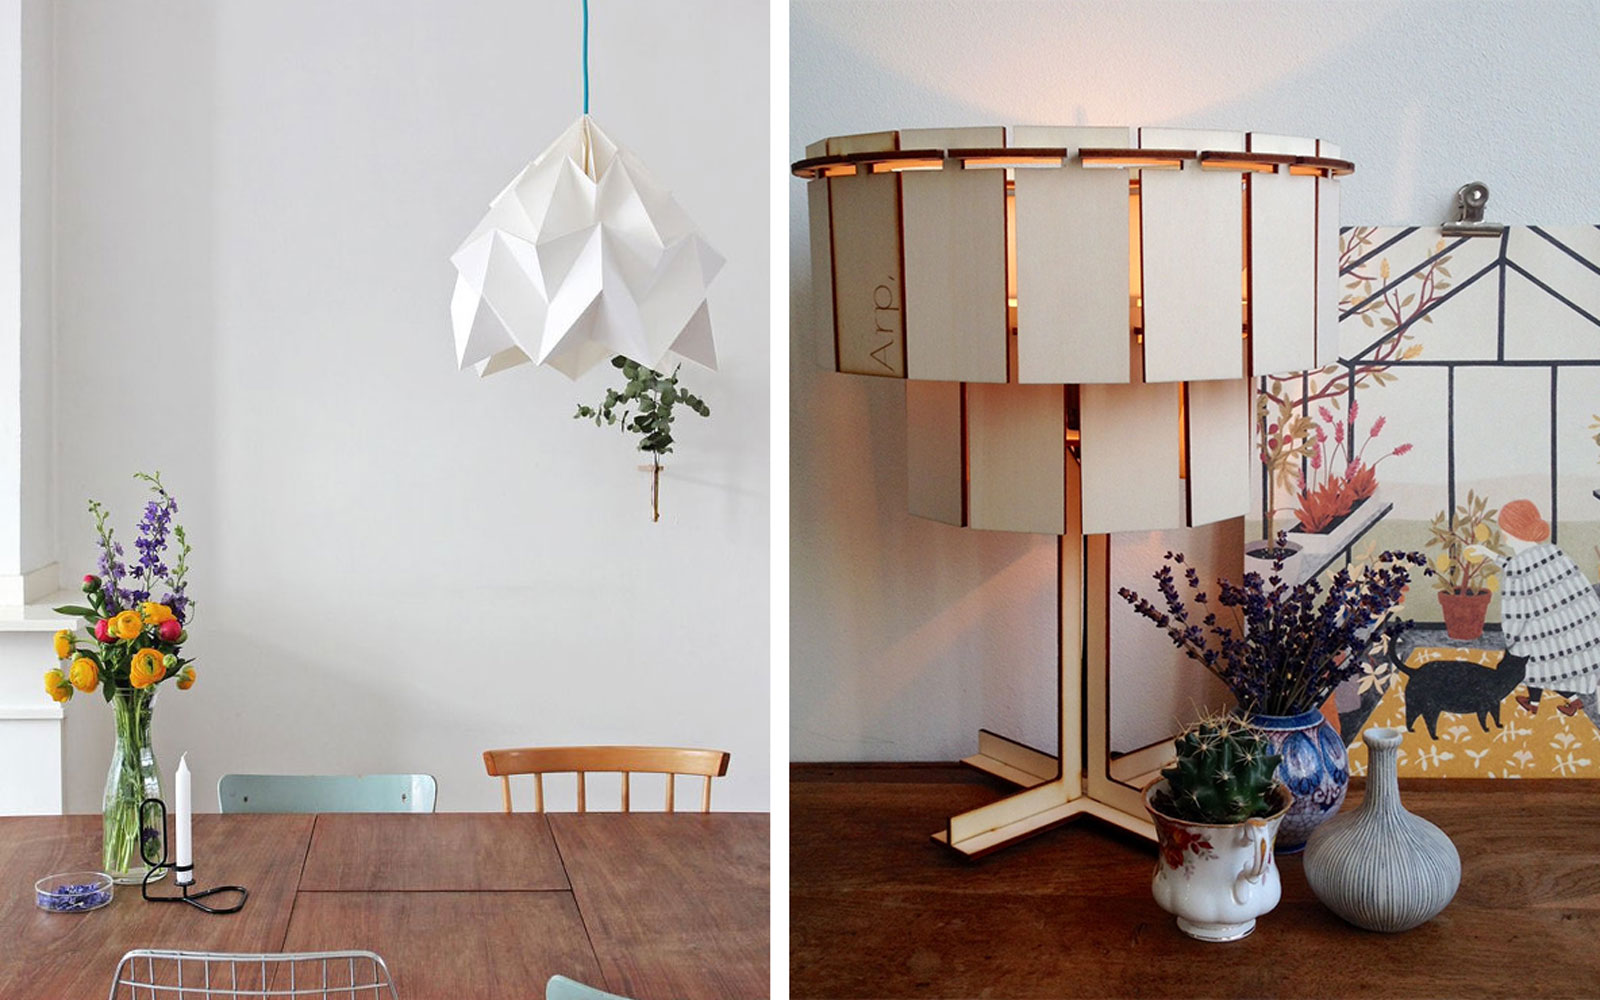 Netherlands: High-concept Lighting